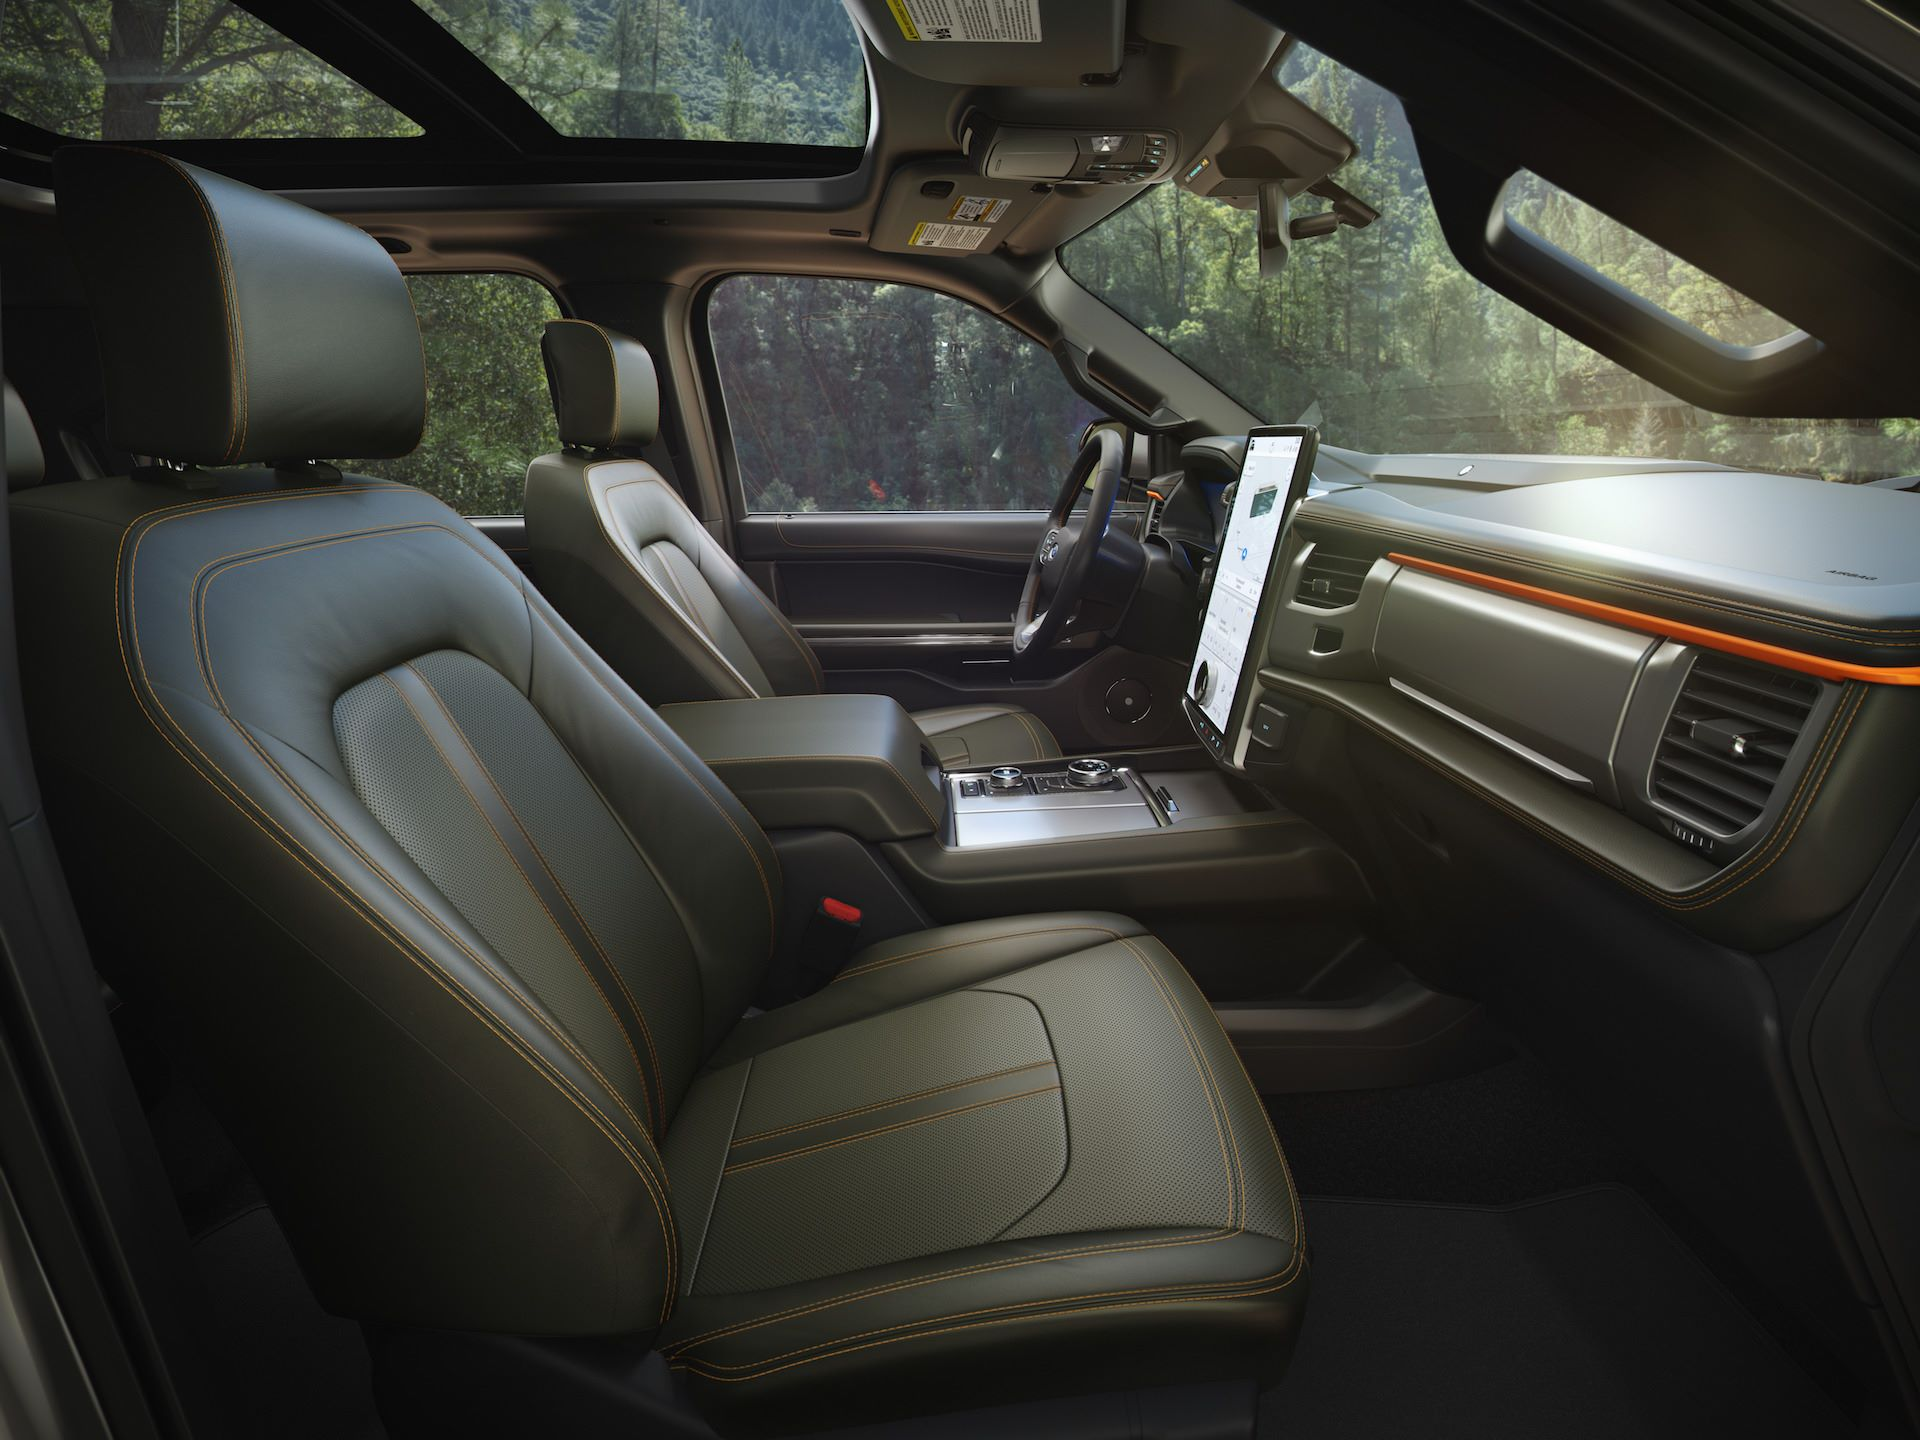 2022-Ford-Expedition-Timberline-00003-1